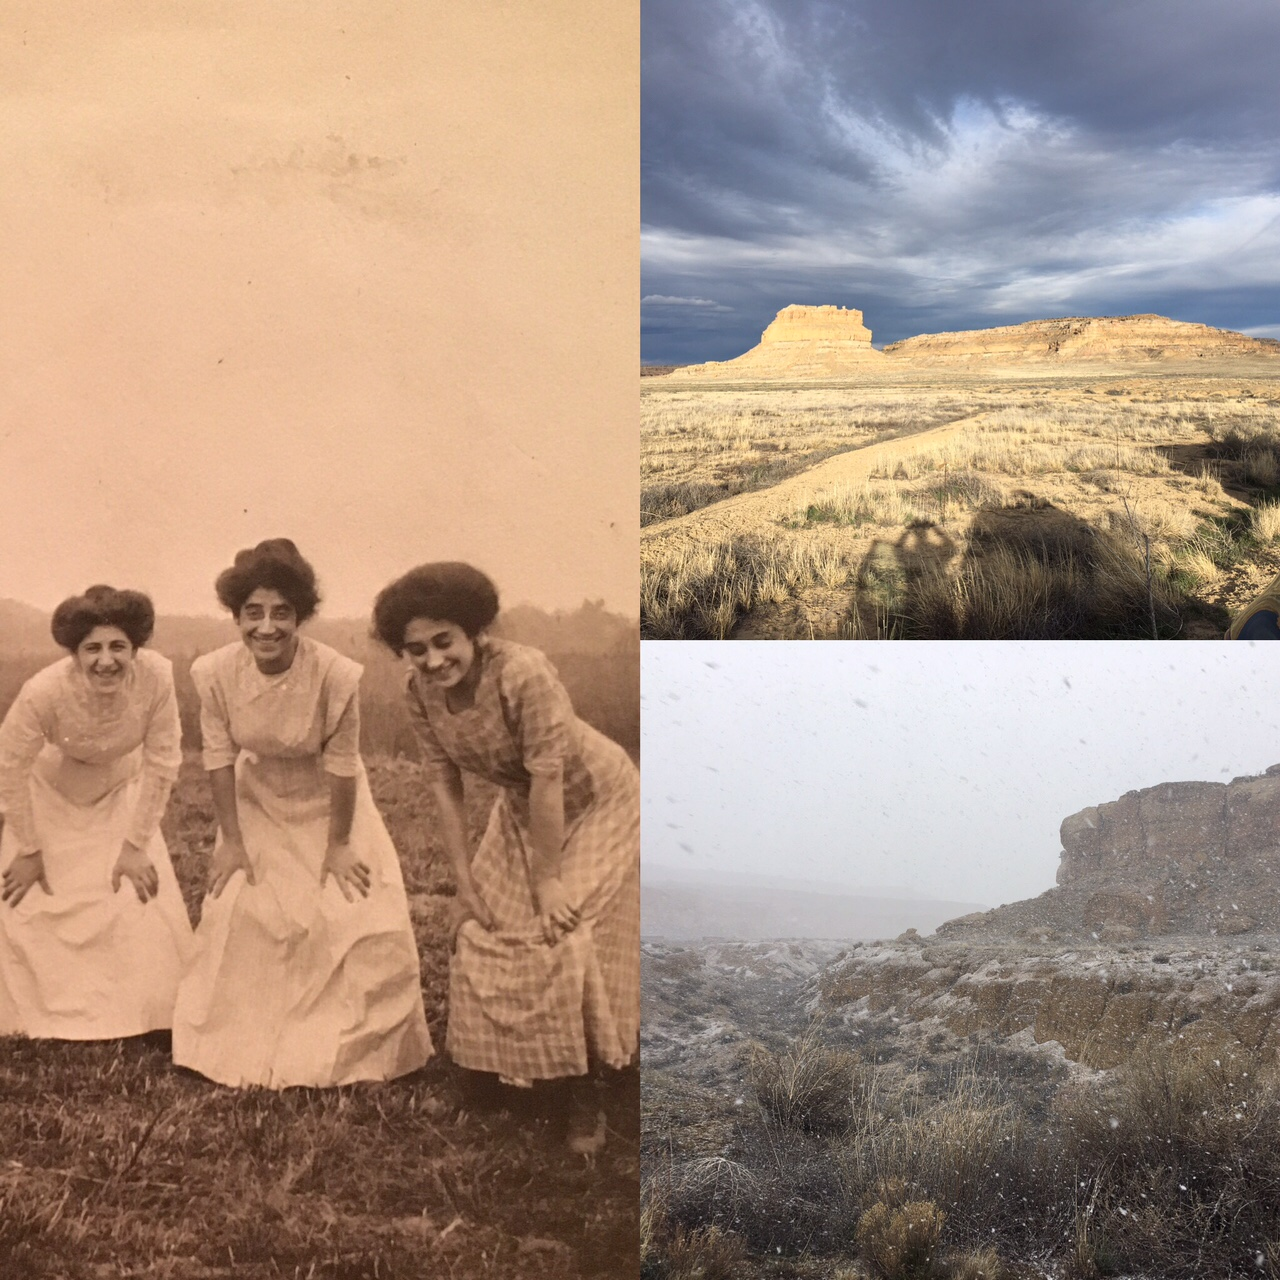 The Steinert girls: Rose, Lucy and Minnie ca 1910. Chaco Canyon at sunset. Chaco in snow.